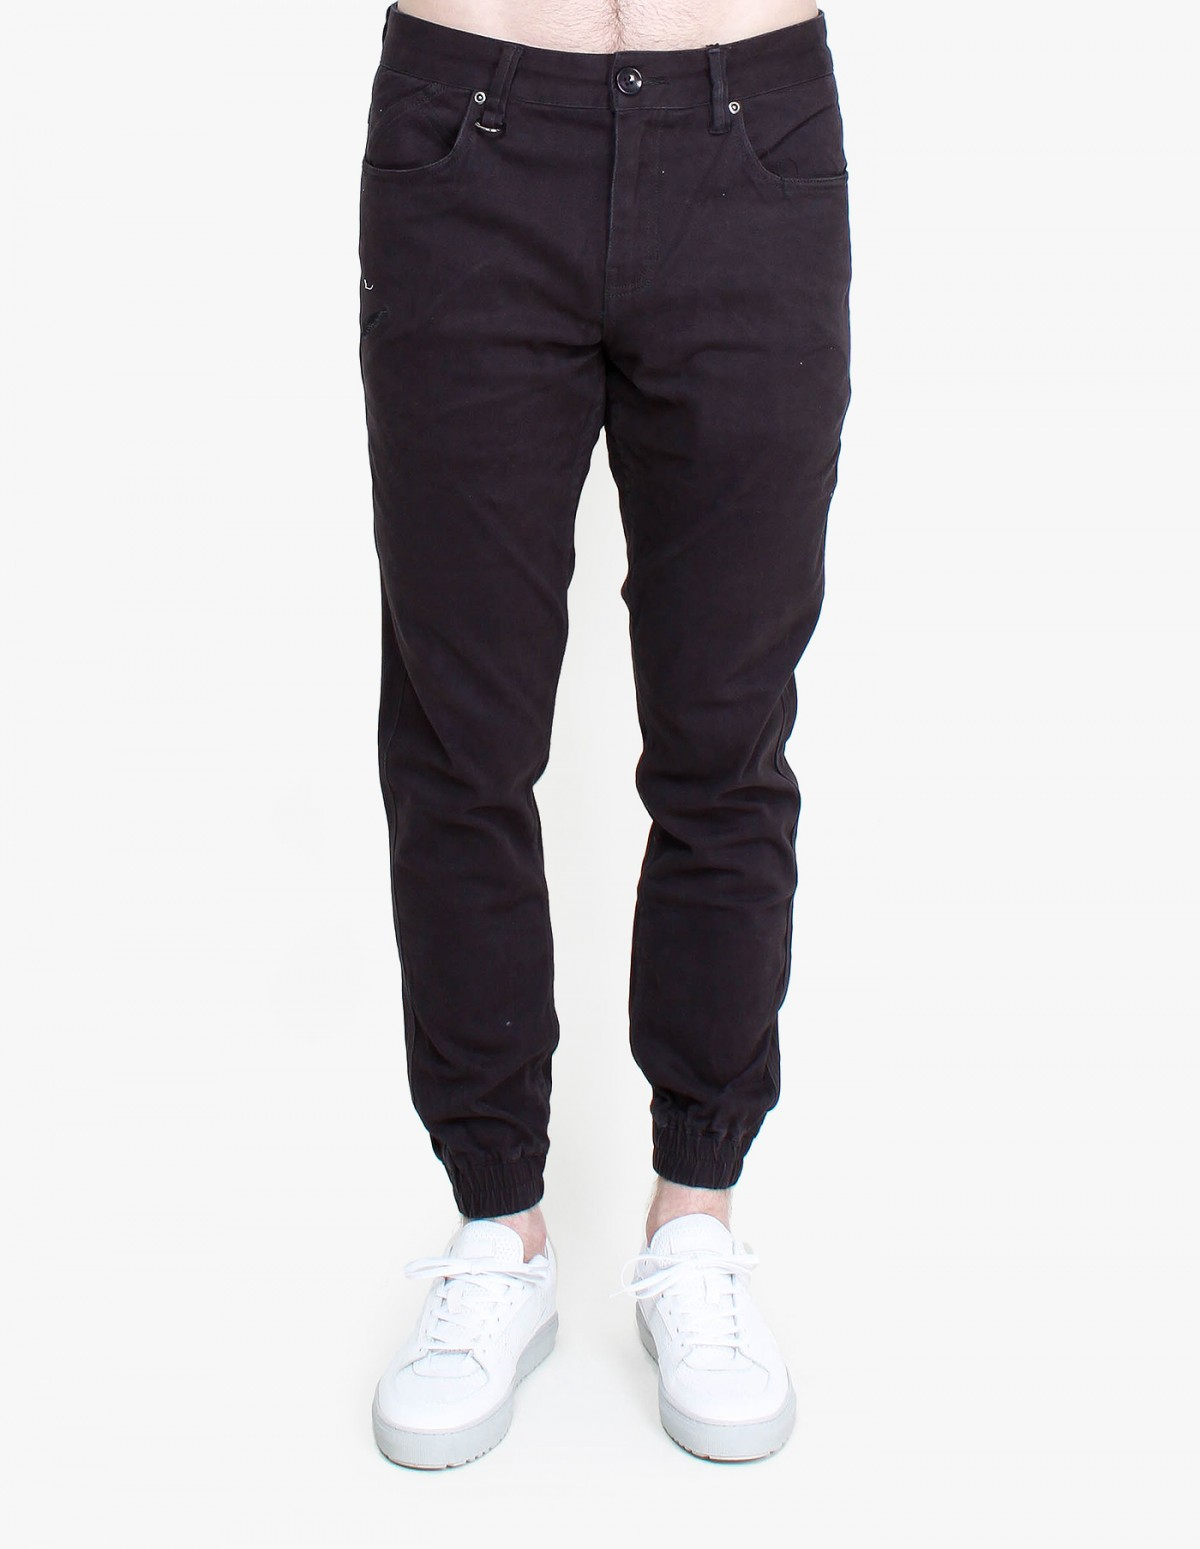 Publish Parkin Jogger in Navy